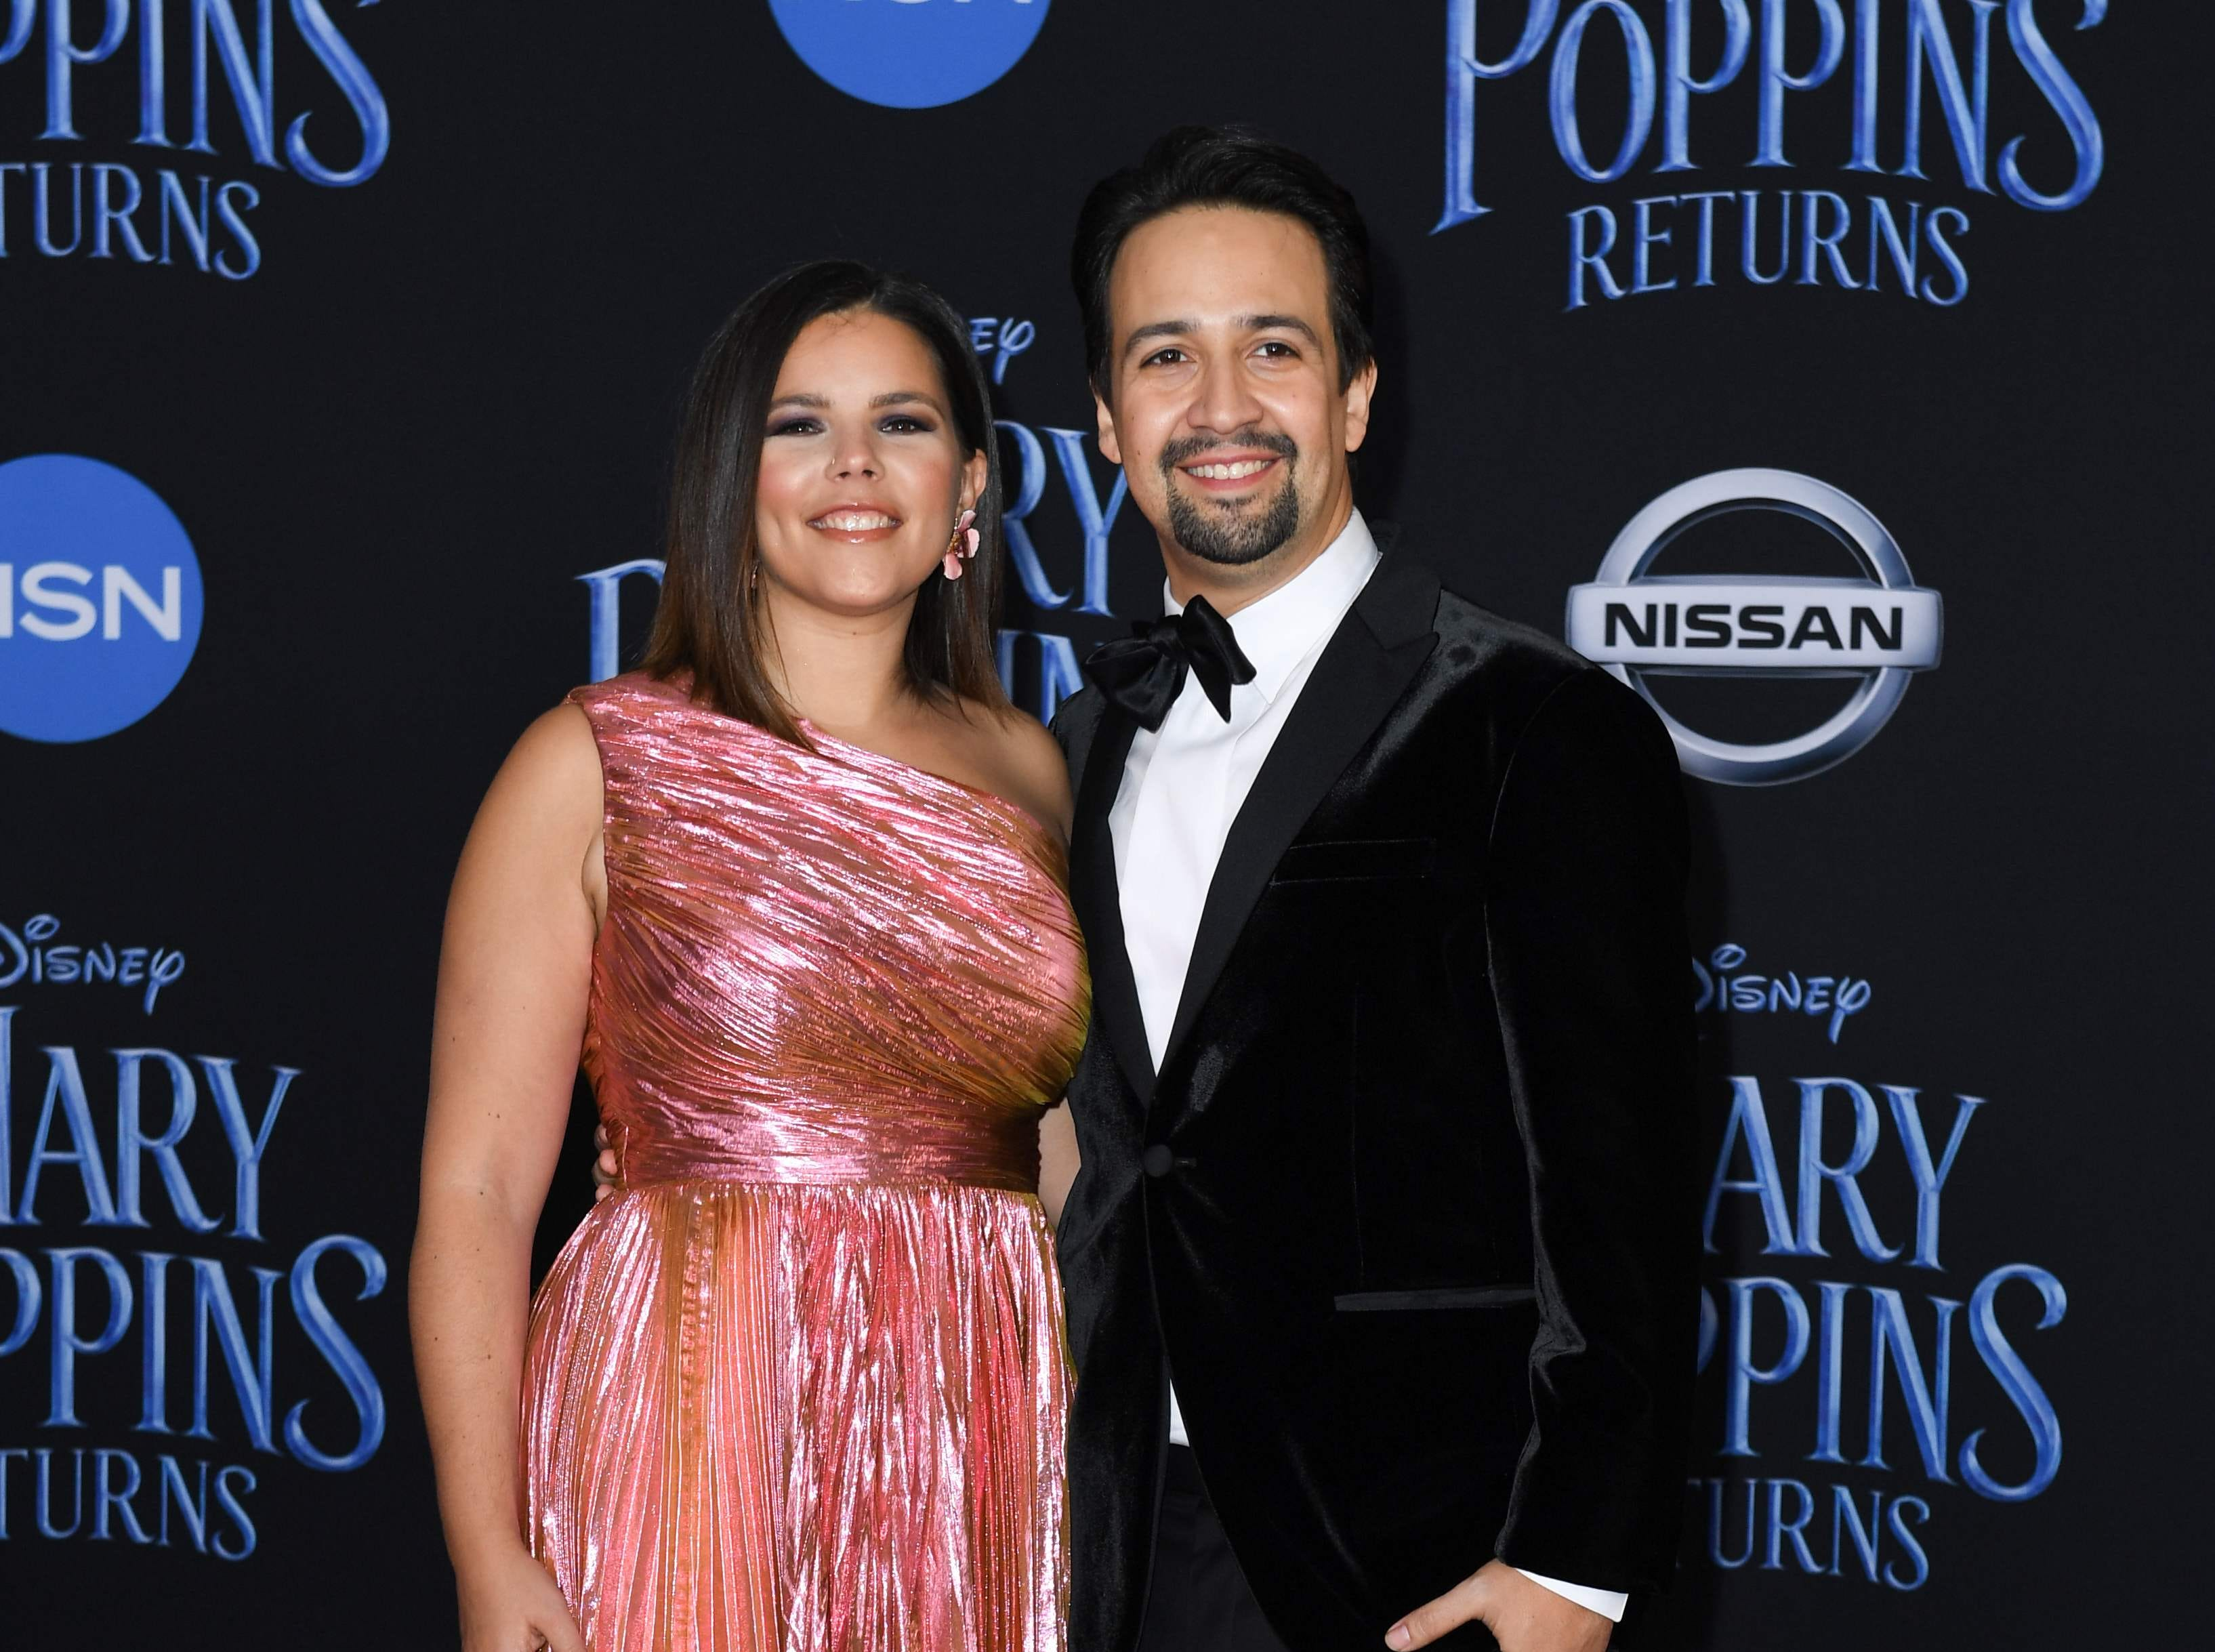 """US composer/playwright/actor Lin-Manuel Miranda and his wife Vanessa Nadal arrive for the world premiere of Disney's """"Mary Poppins Returns"""" at the Dolby theatre in Hollywood on November 29, 2018. (Photo by VALERIE MACON / AFP)VALERIE MACON/AFP/Getty Images ORG XMIT: 'Mary Pop ORIG FILE ID: AFP_1B81DA"""